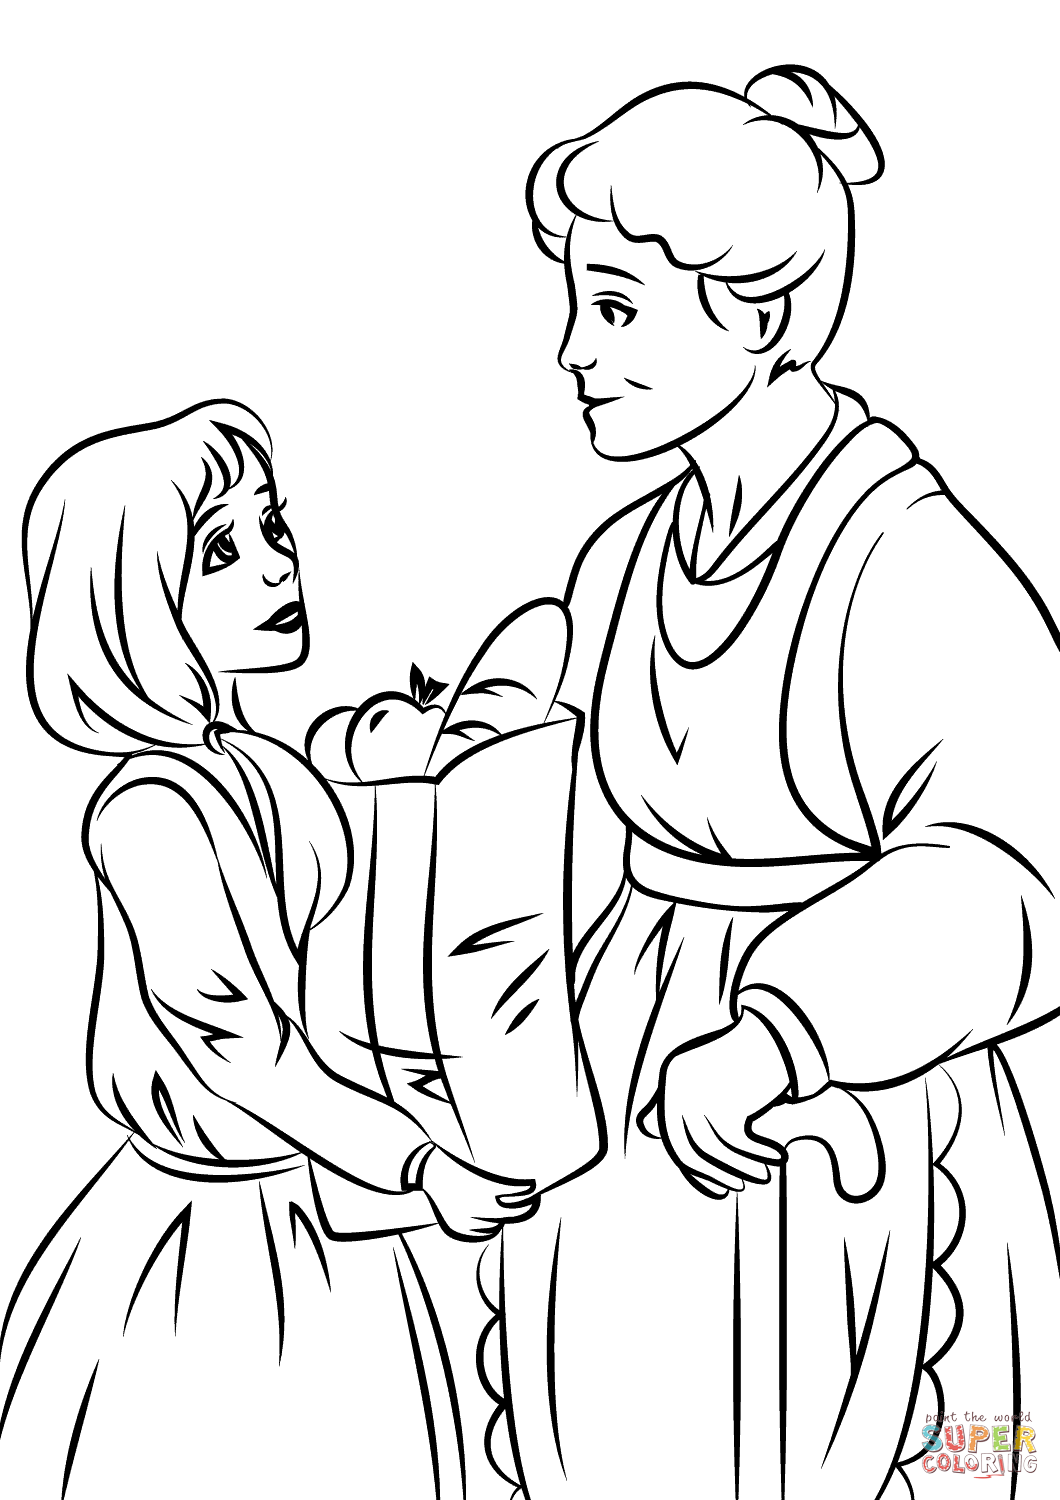 helping coloring page helpful child coloring page crayon action coloring pages coloring helping page